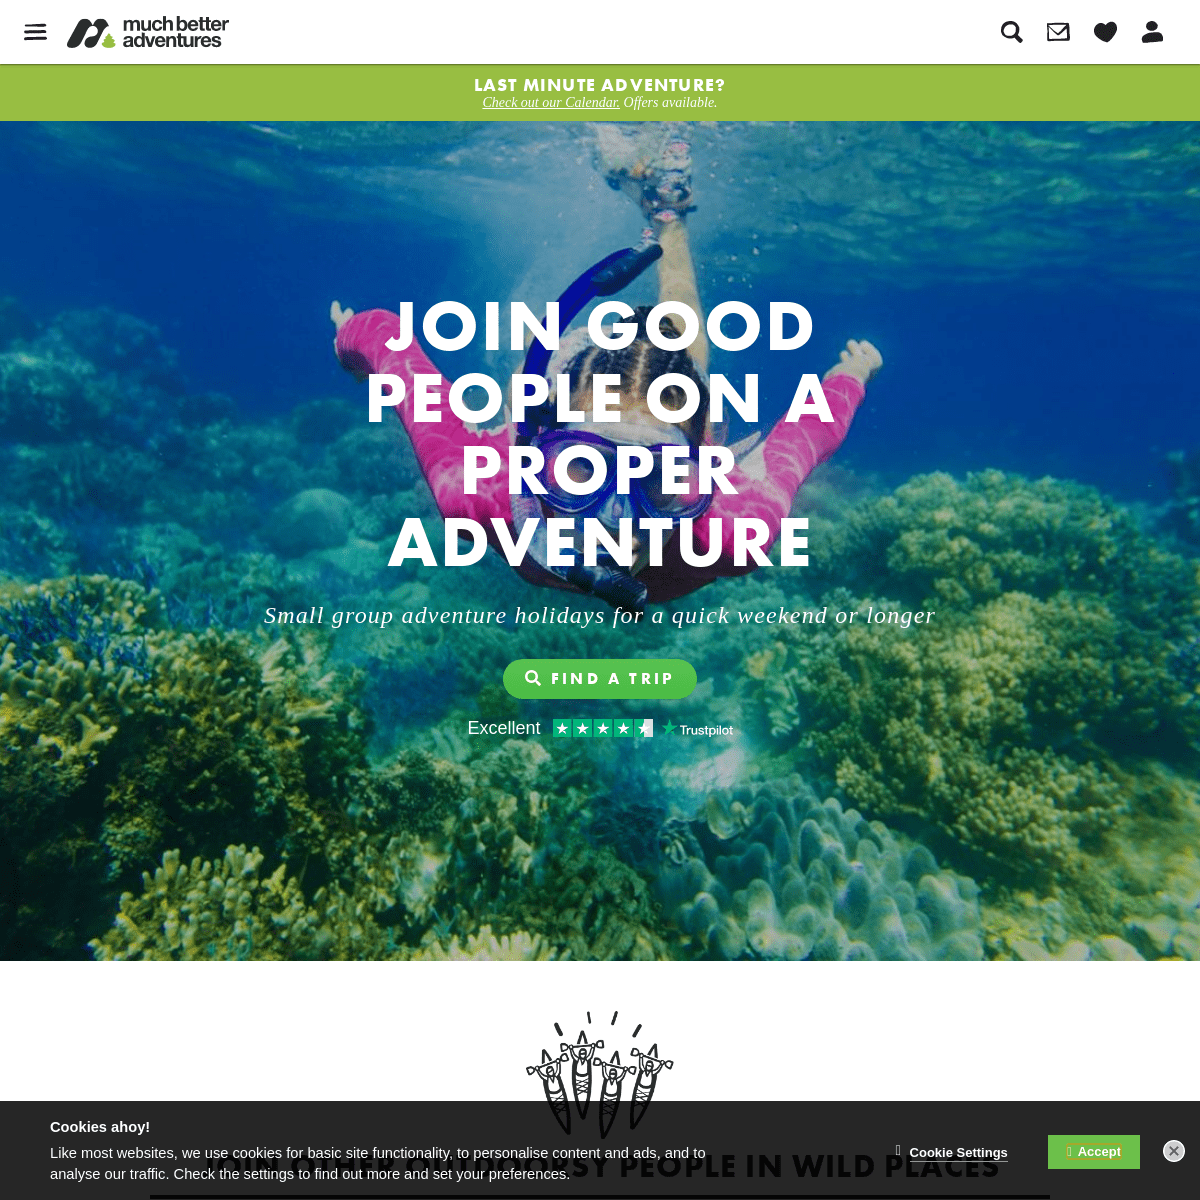 Proper adventure holidays with good people - Much Better Adventures